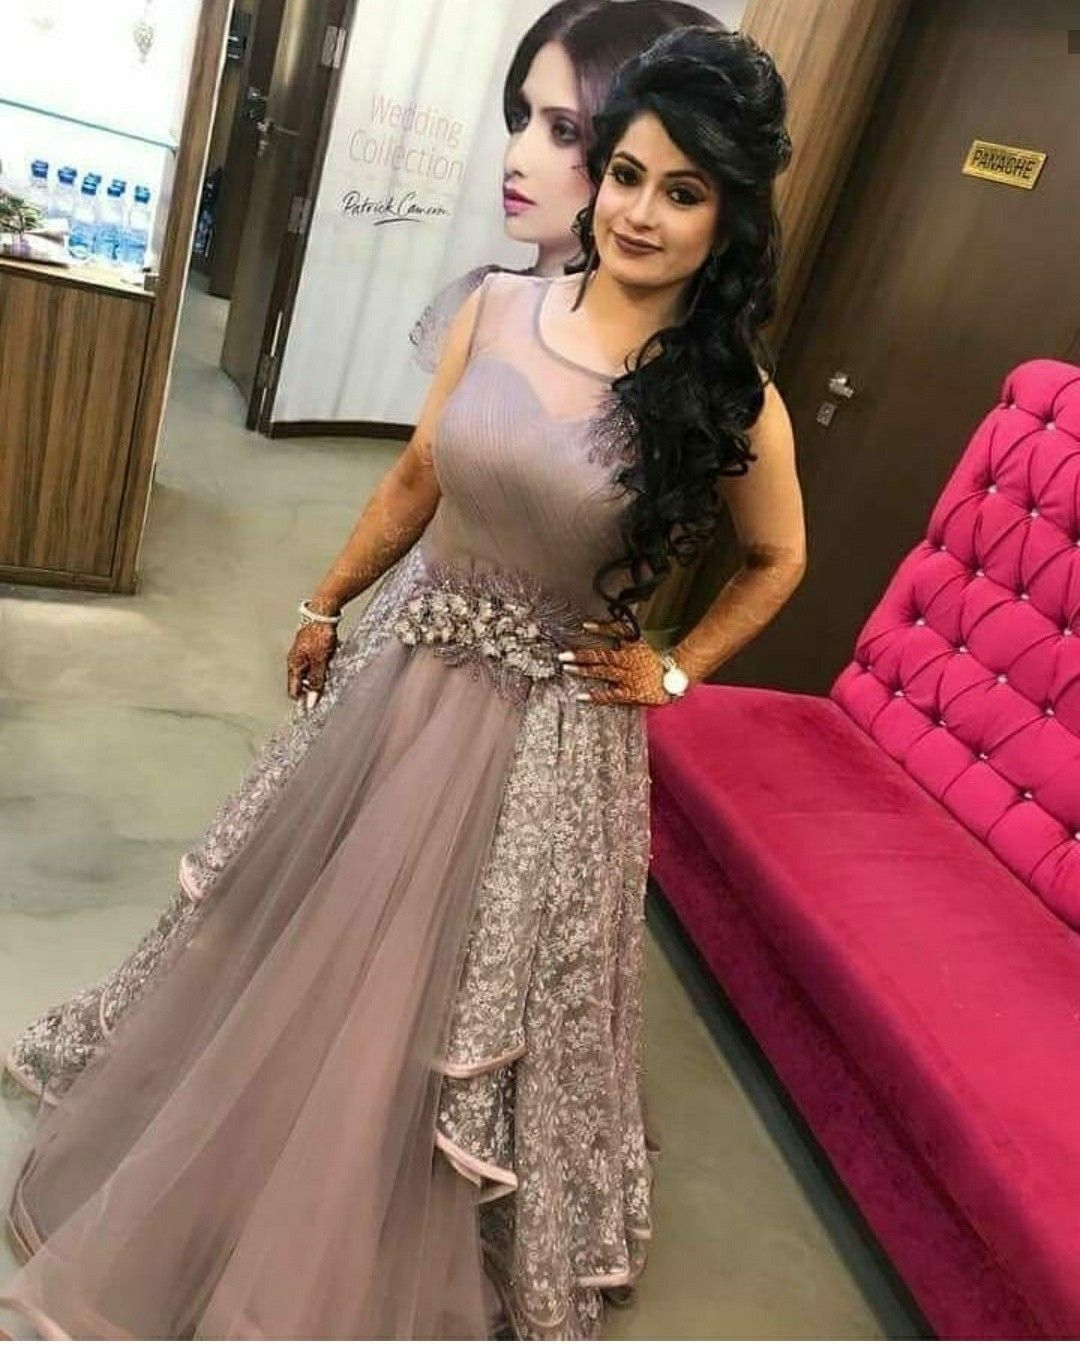 Lovely Hairstyle On Gown For Indian Wedding 2020 Hairstyles For Gowns Indian Wedding Gowns Indian Gowns Dresses